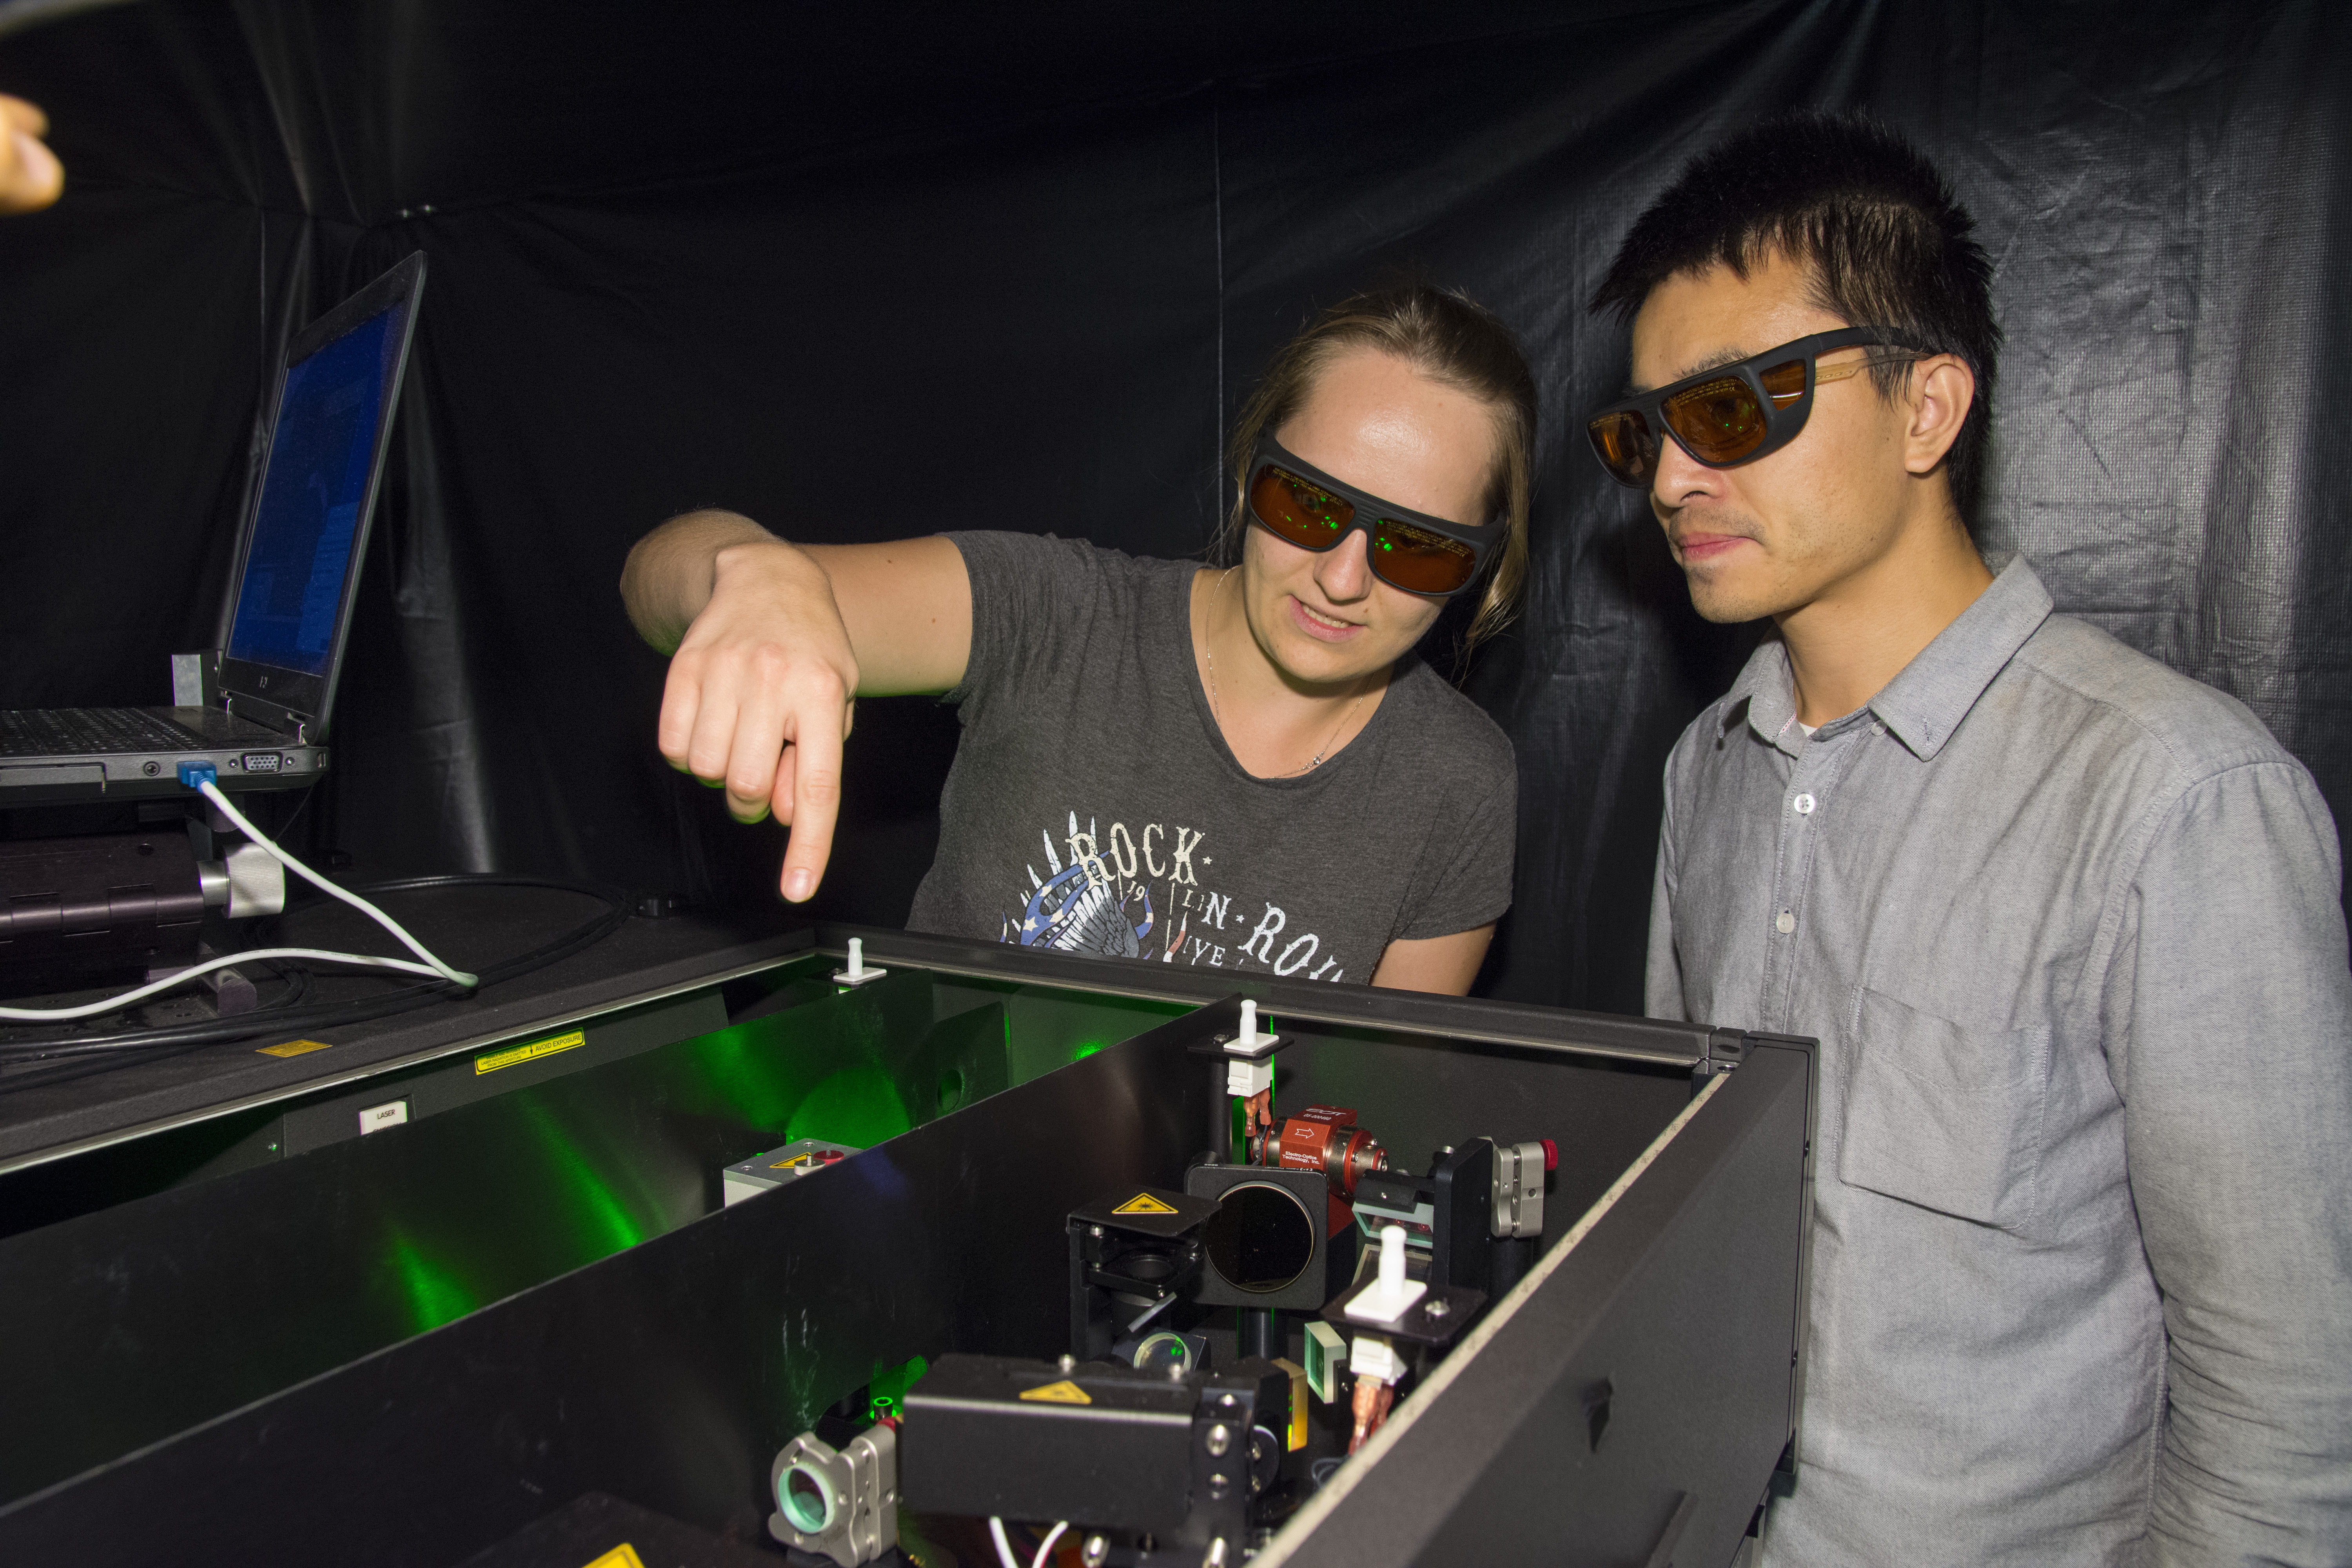 Physics PhD students Kateryna Kushnir, left, and Guangjiang Li, both wearing red-tinger safety glasses, examine the lasers inside an apparatus in the Terahertz Physics Lab.